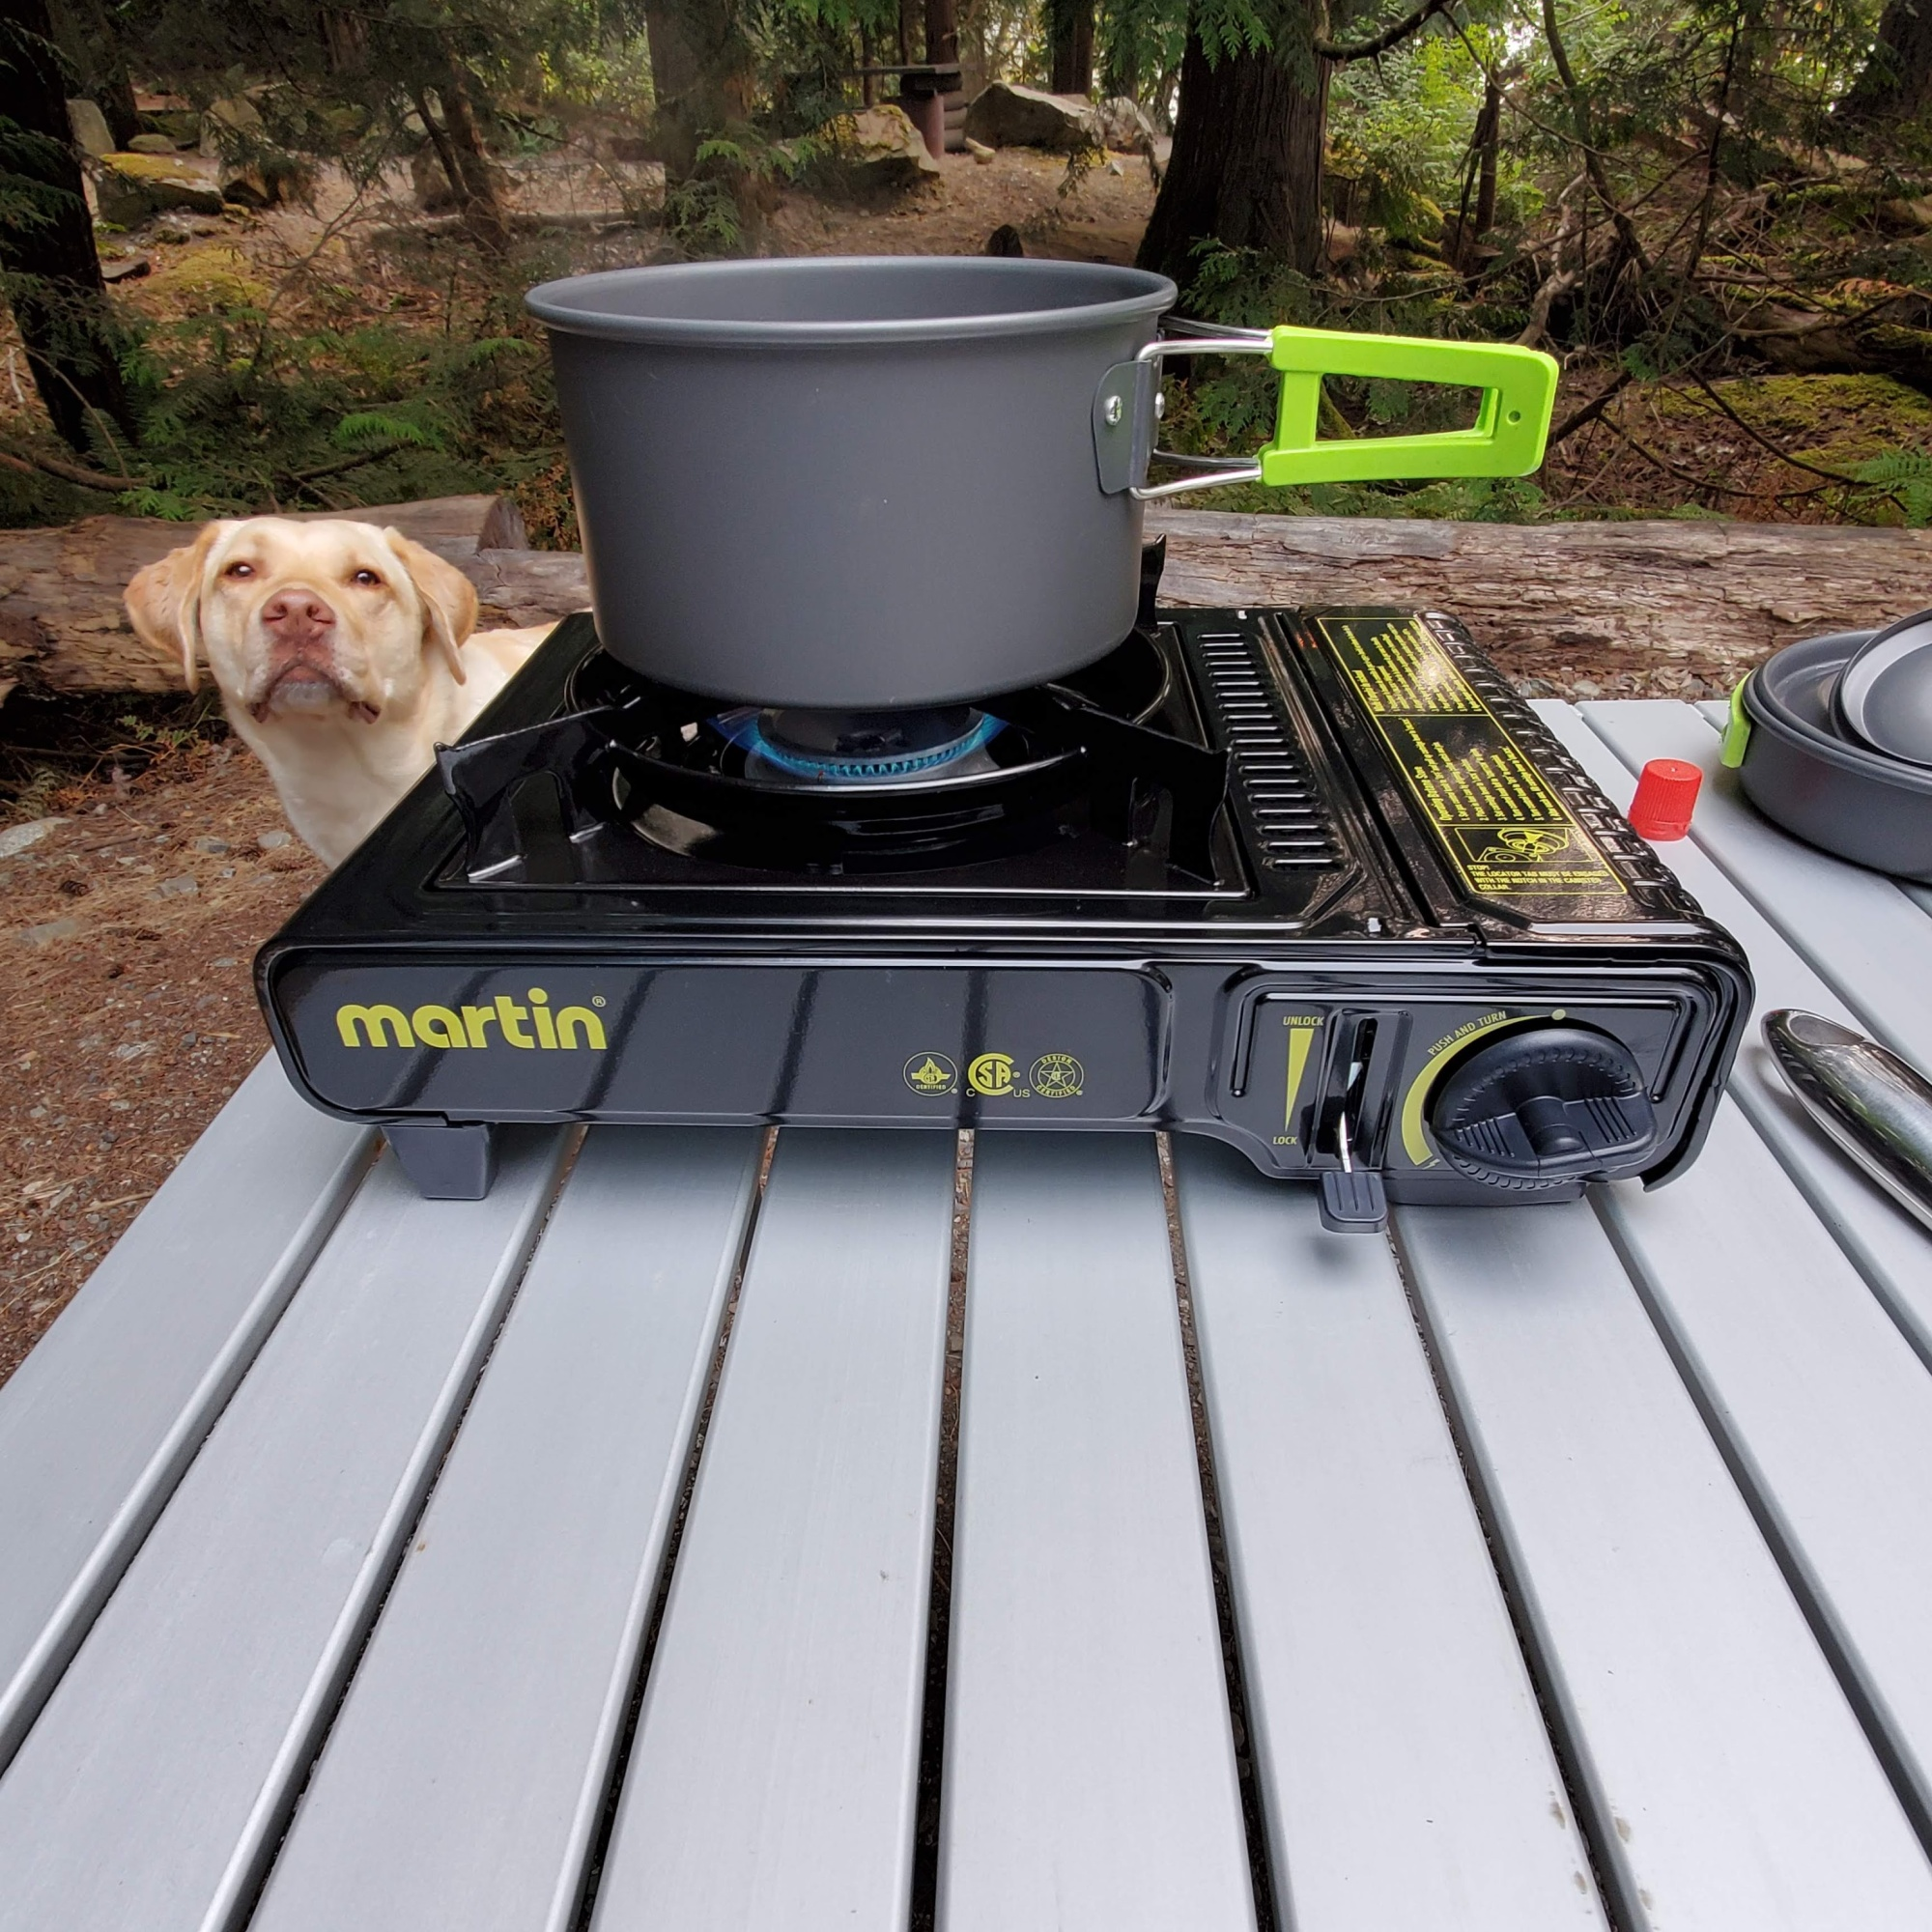 Showing the Martin camping stove with pot sitting on top